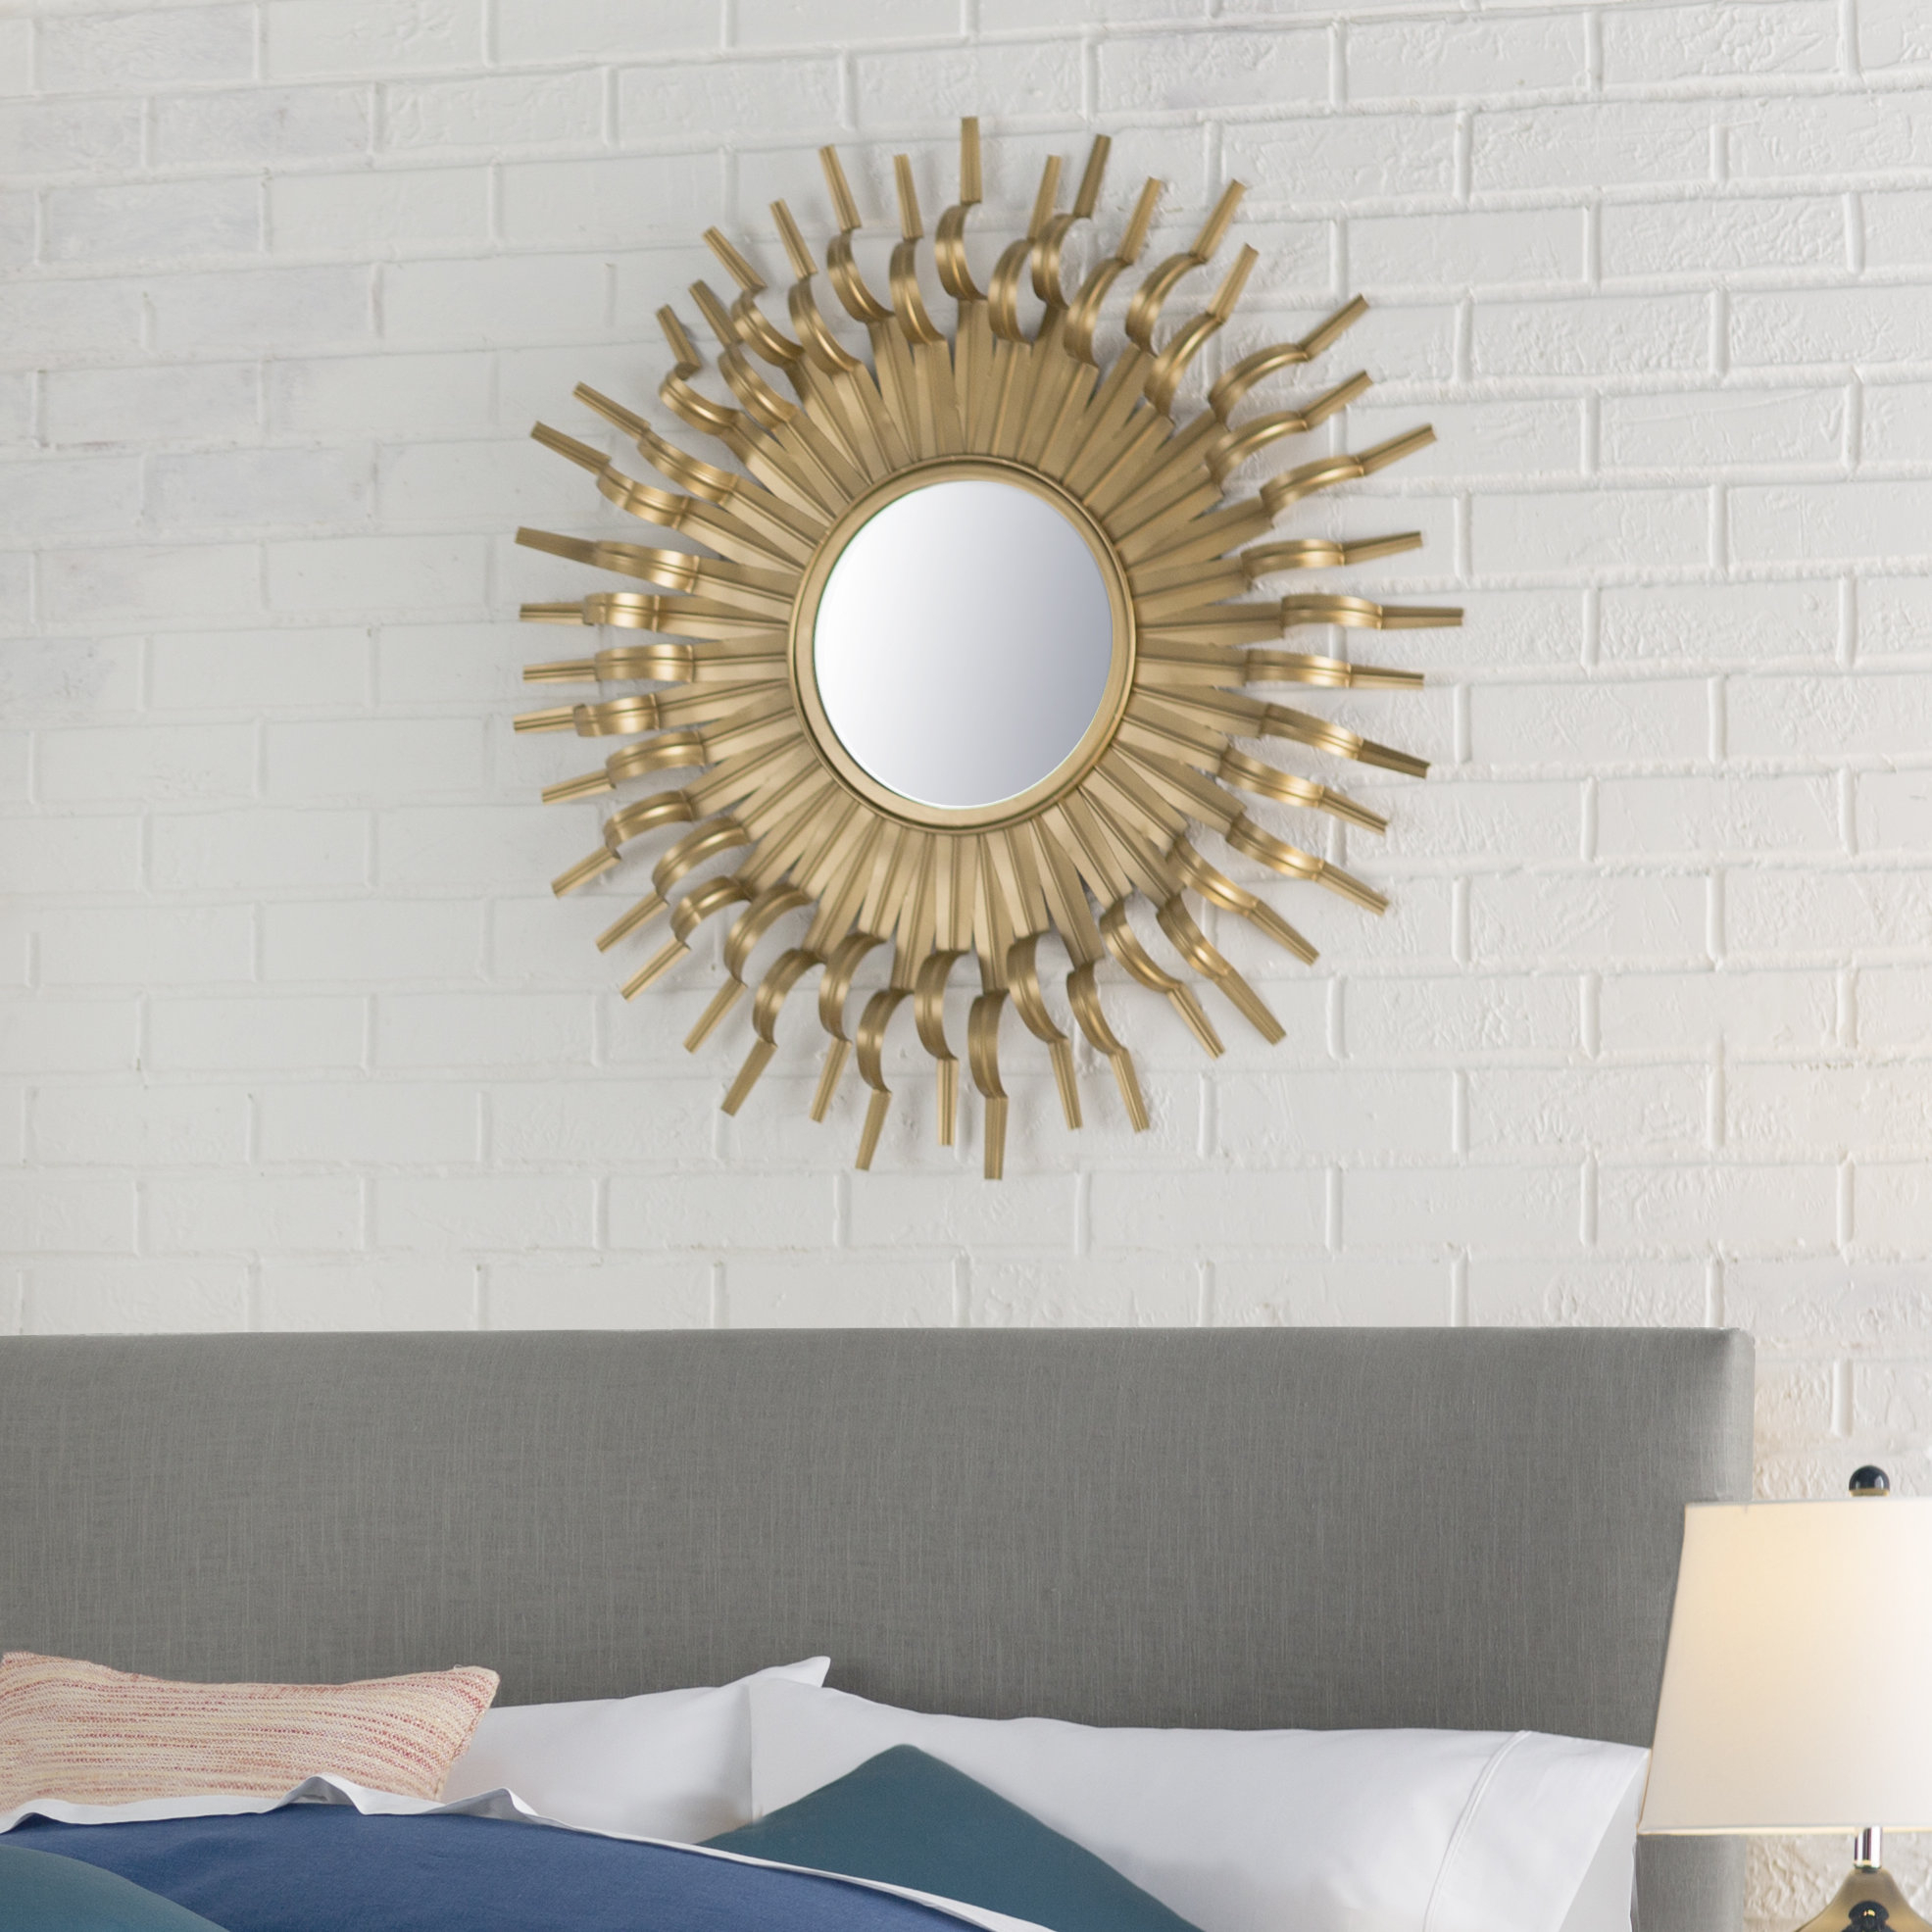 Birksgate Accent Mirror with Josephson Starburst Glam Beveled Accent Wall Mirrors (Image 3 of 22)